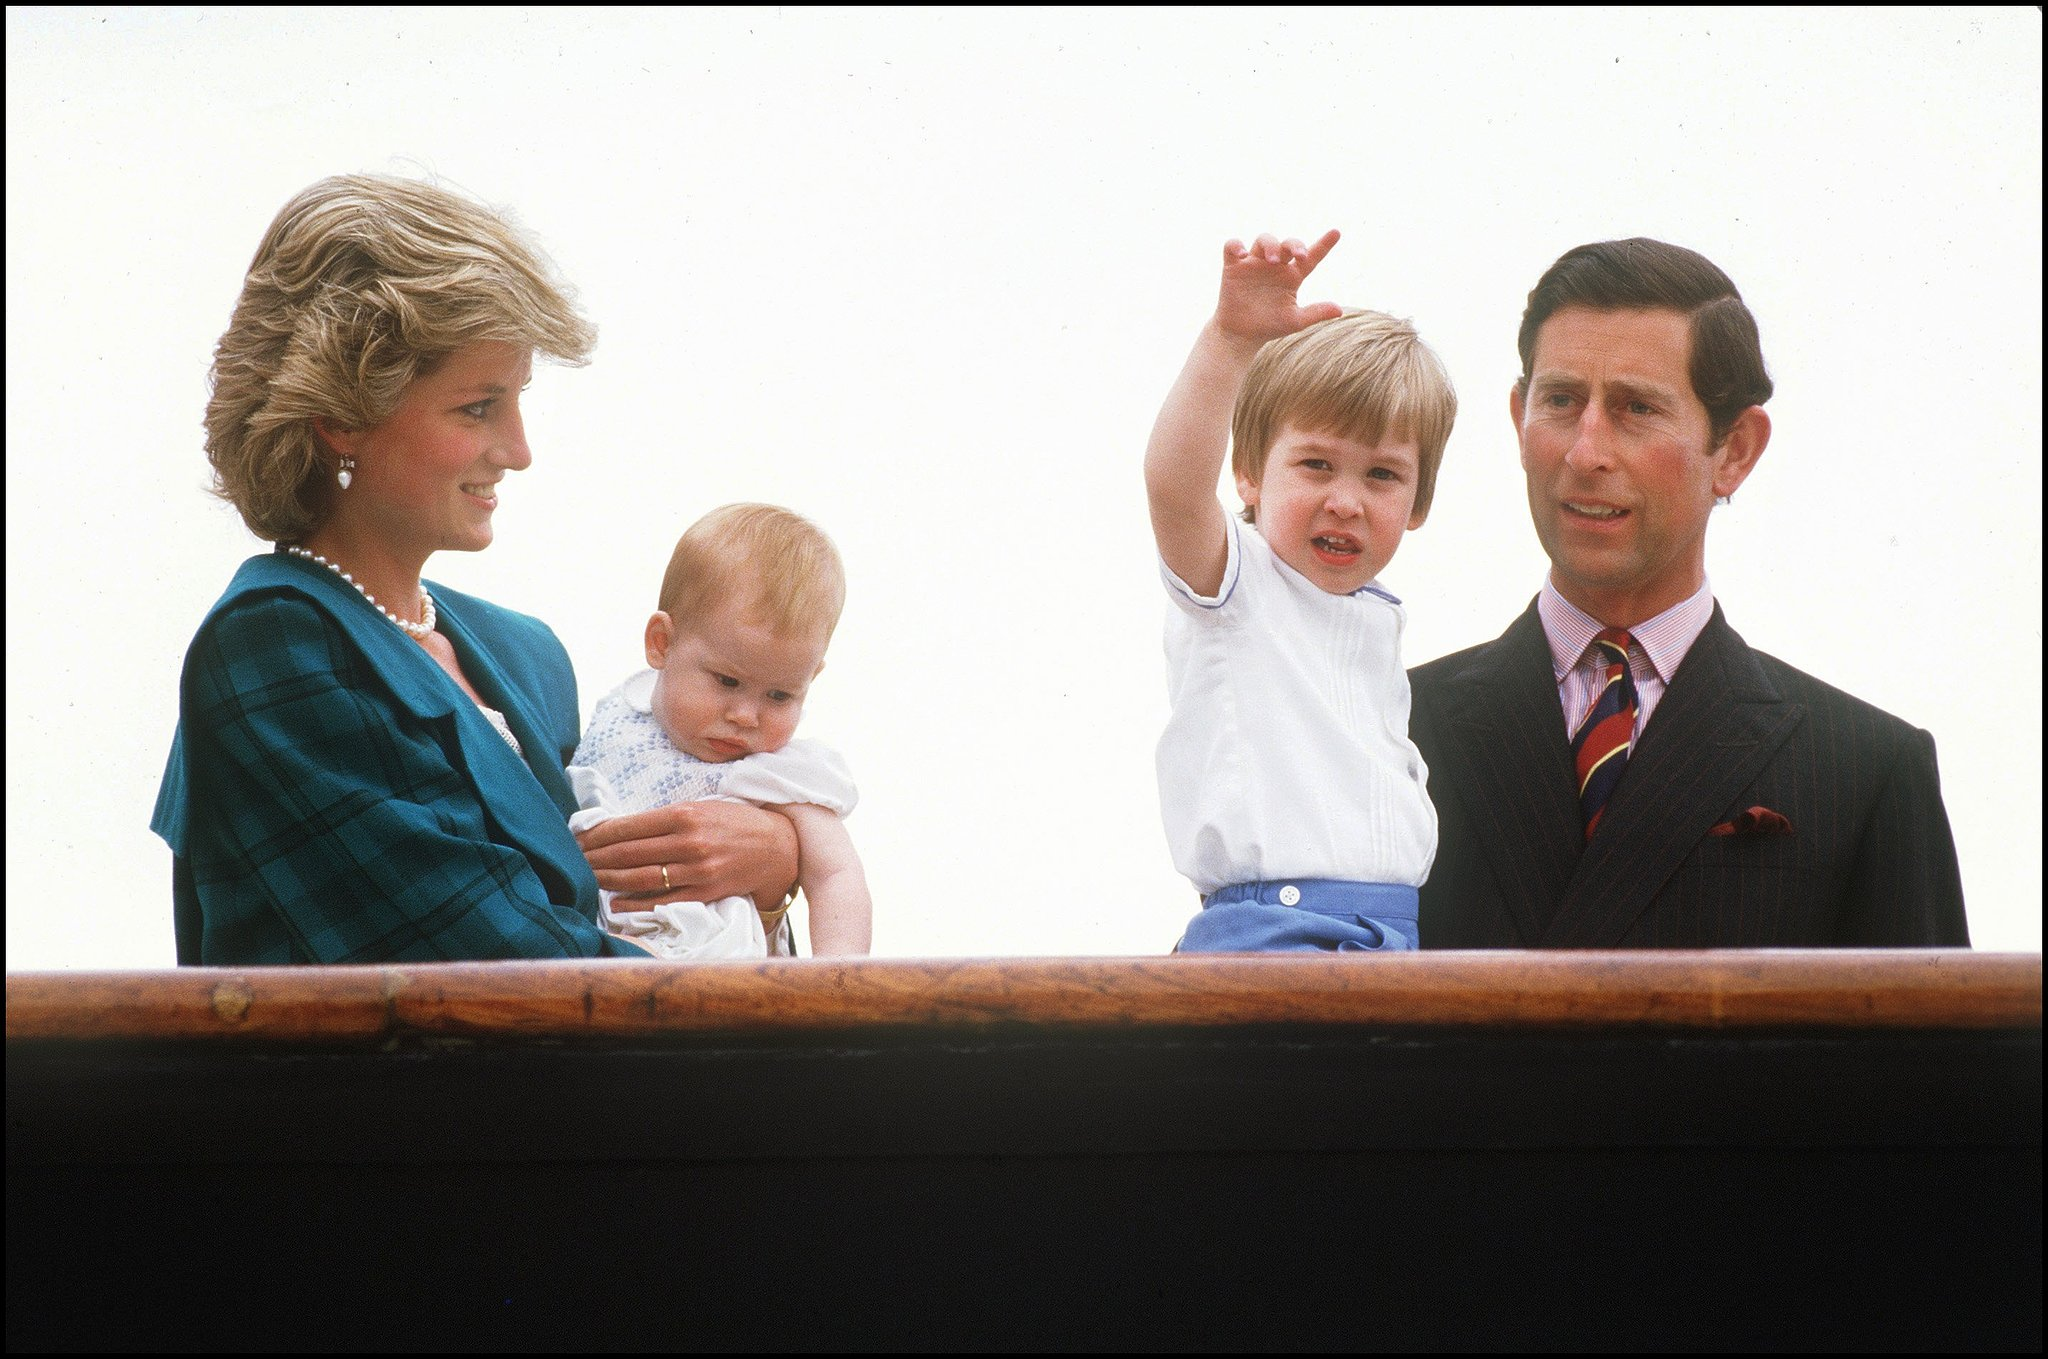 Prince Harry, Princess Diana, Prince Charles, and Prince William visited Venice in May 1985.